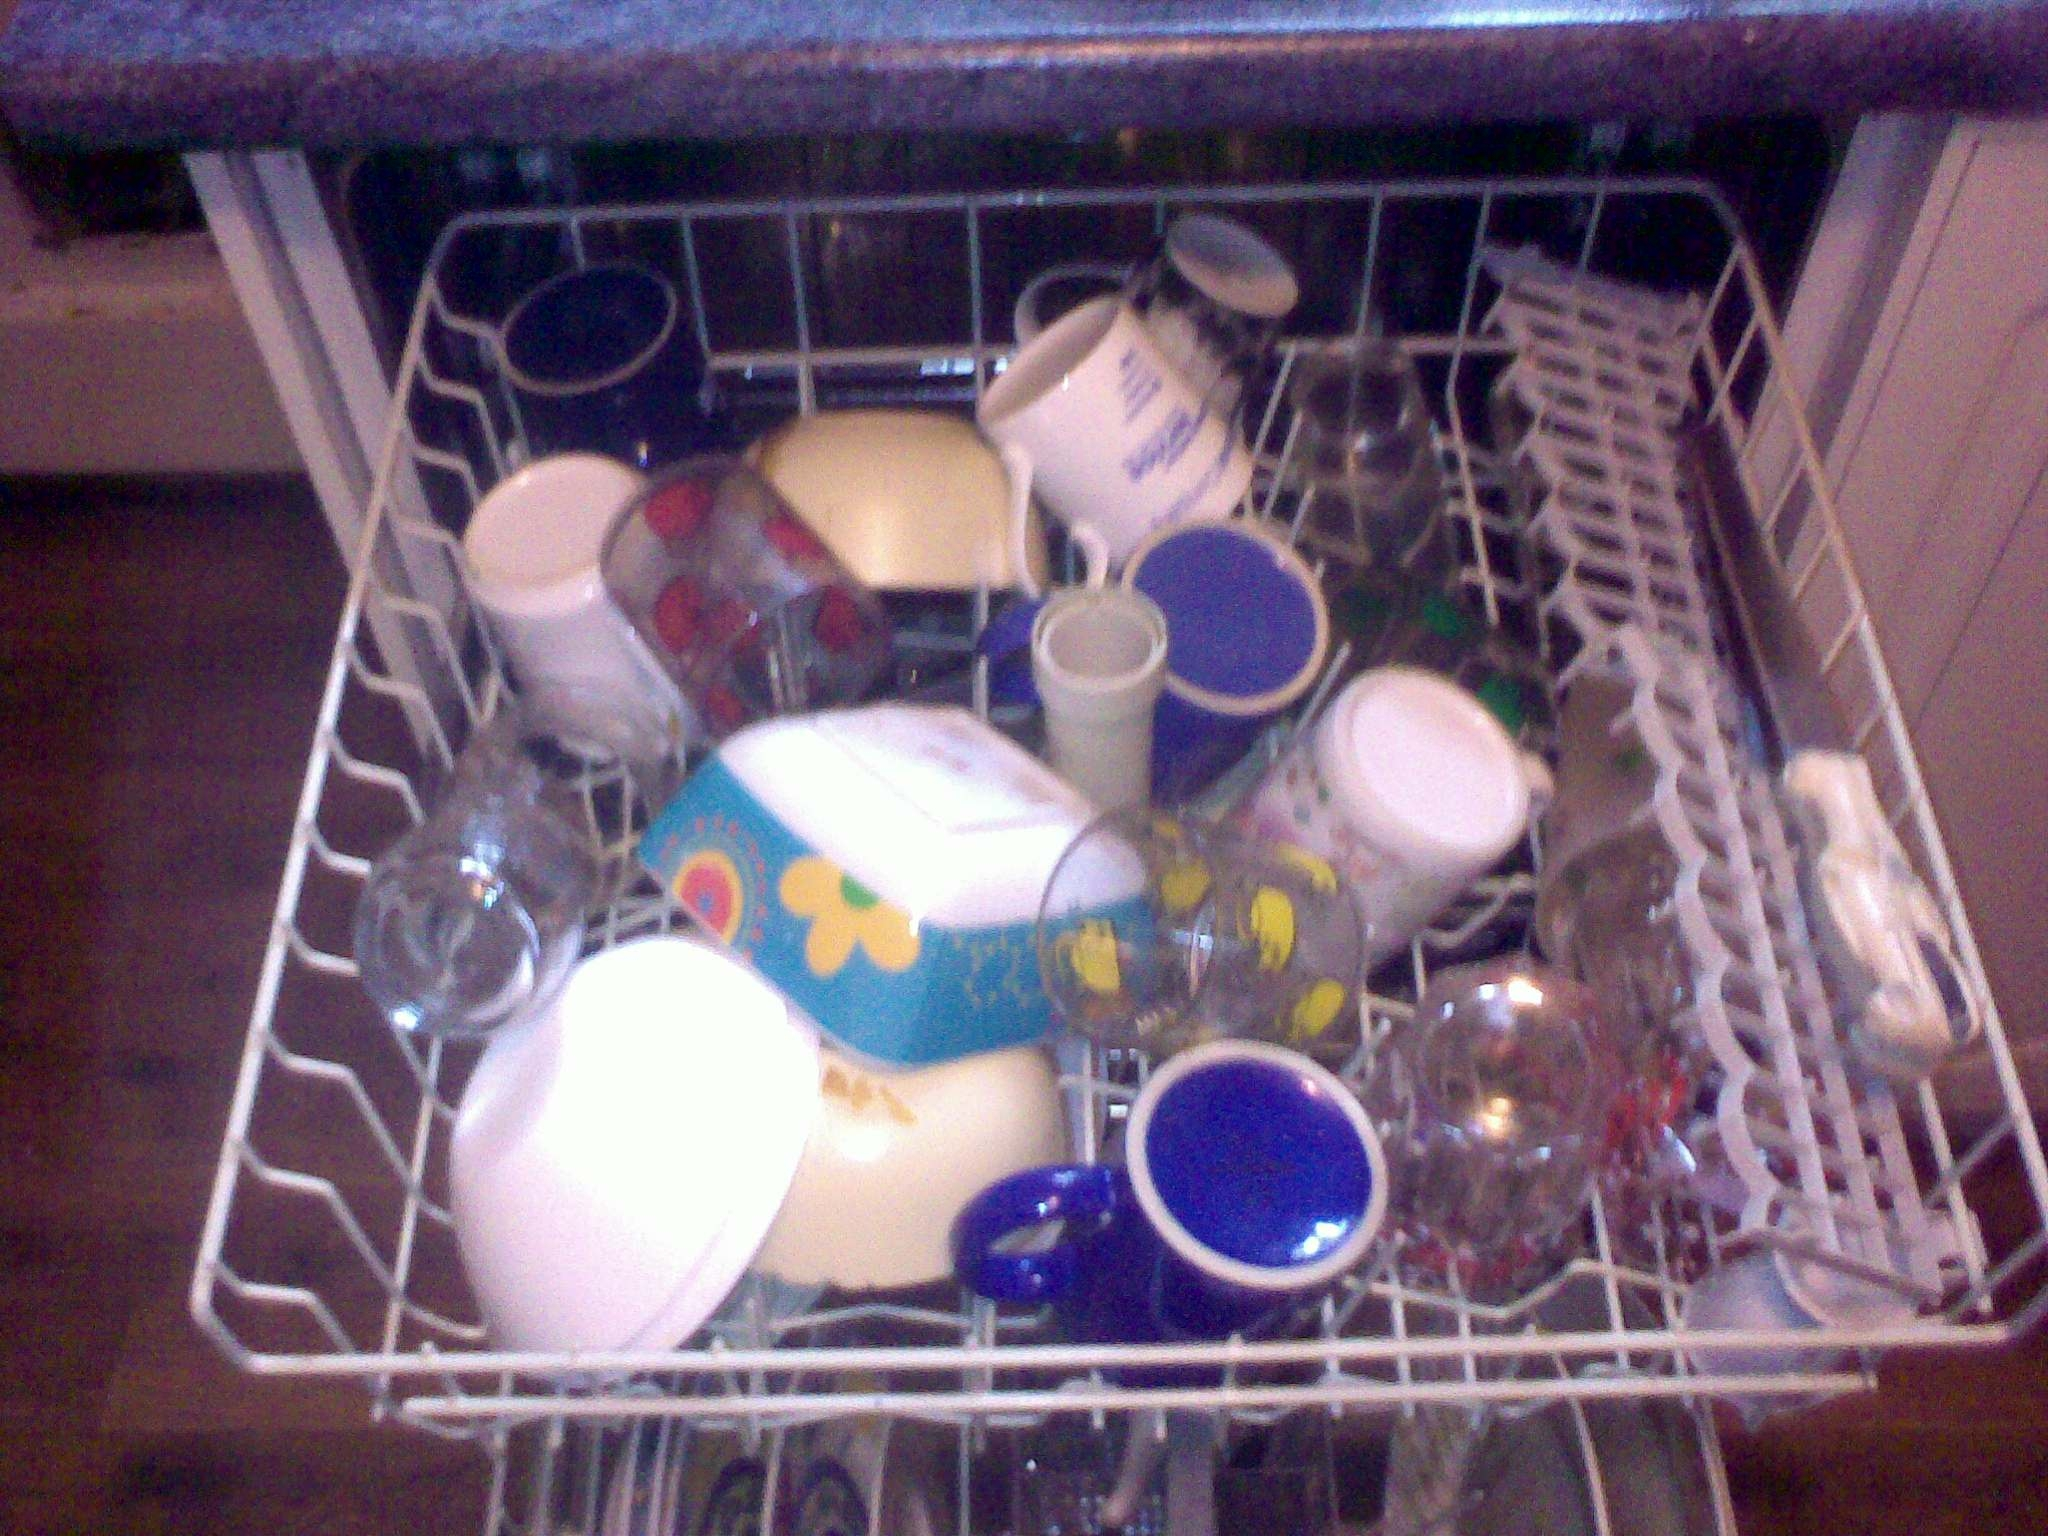 how.not.to.load.a.bosch.dishwasher.JPG